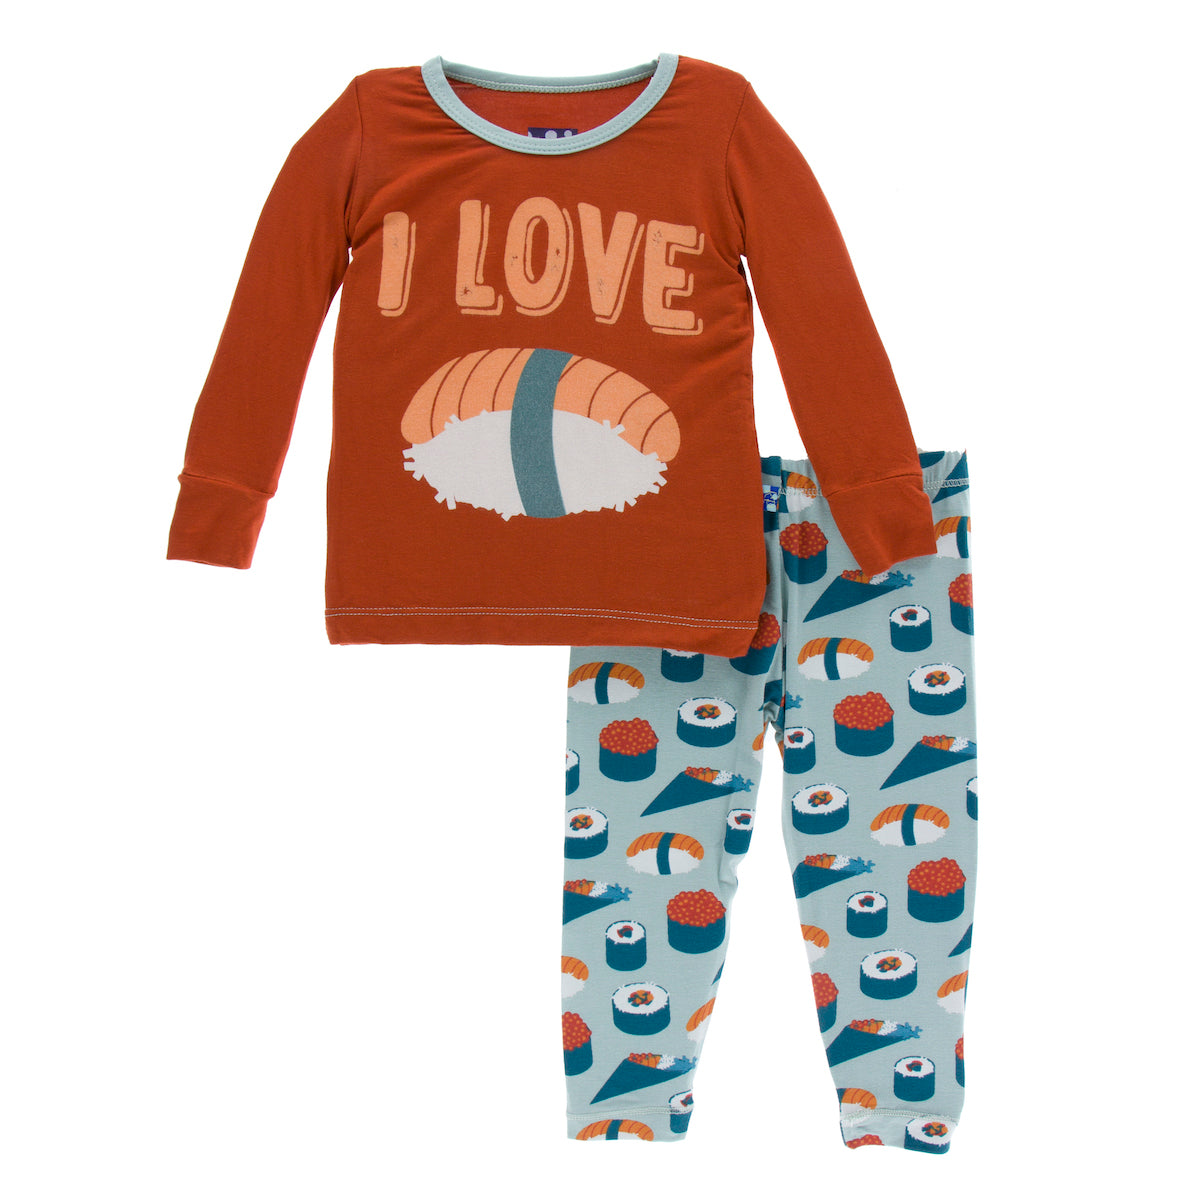 Kickee pants Print Long Sleeve Pajama Set - Jade Sushi